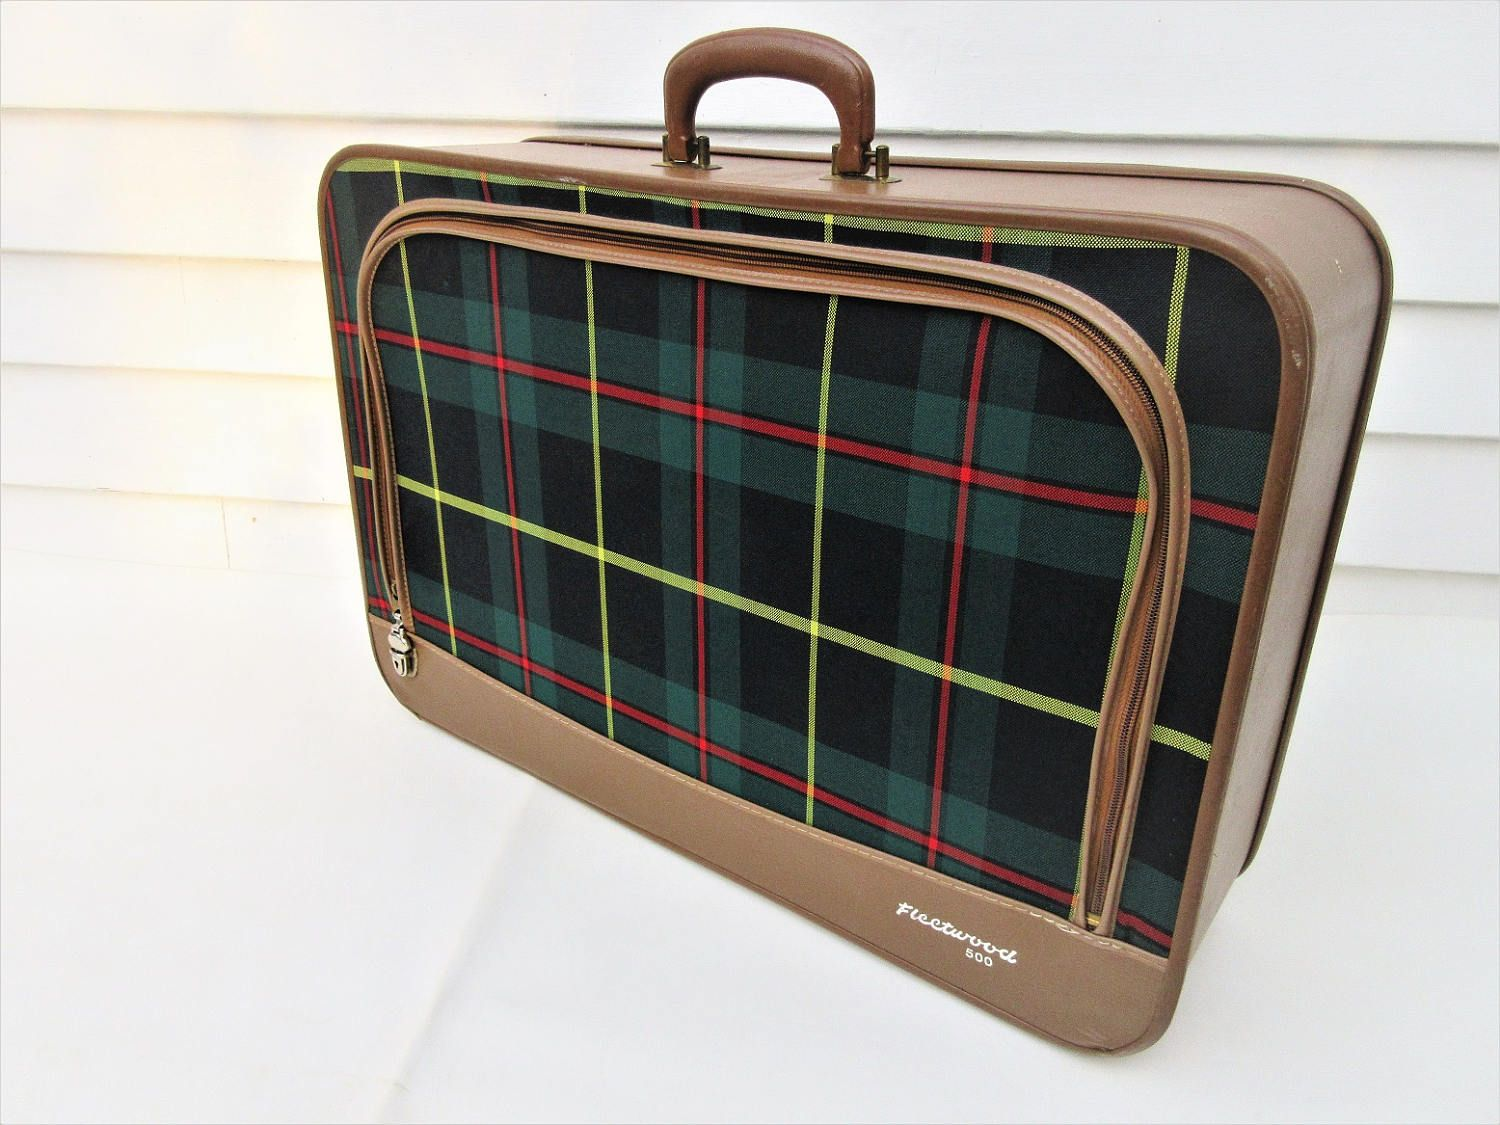 Vintage Suitcase | Tartan Plaid Luggage | Zipper Tote Bag | Plaid Bag by WhimzyThyme on Etsy #etsymagazine #etsyfinds #plaidluggage #vintagesuitcase